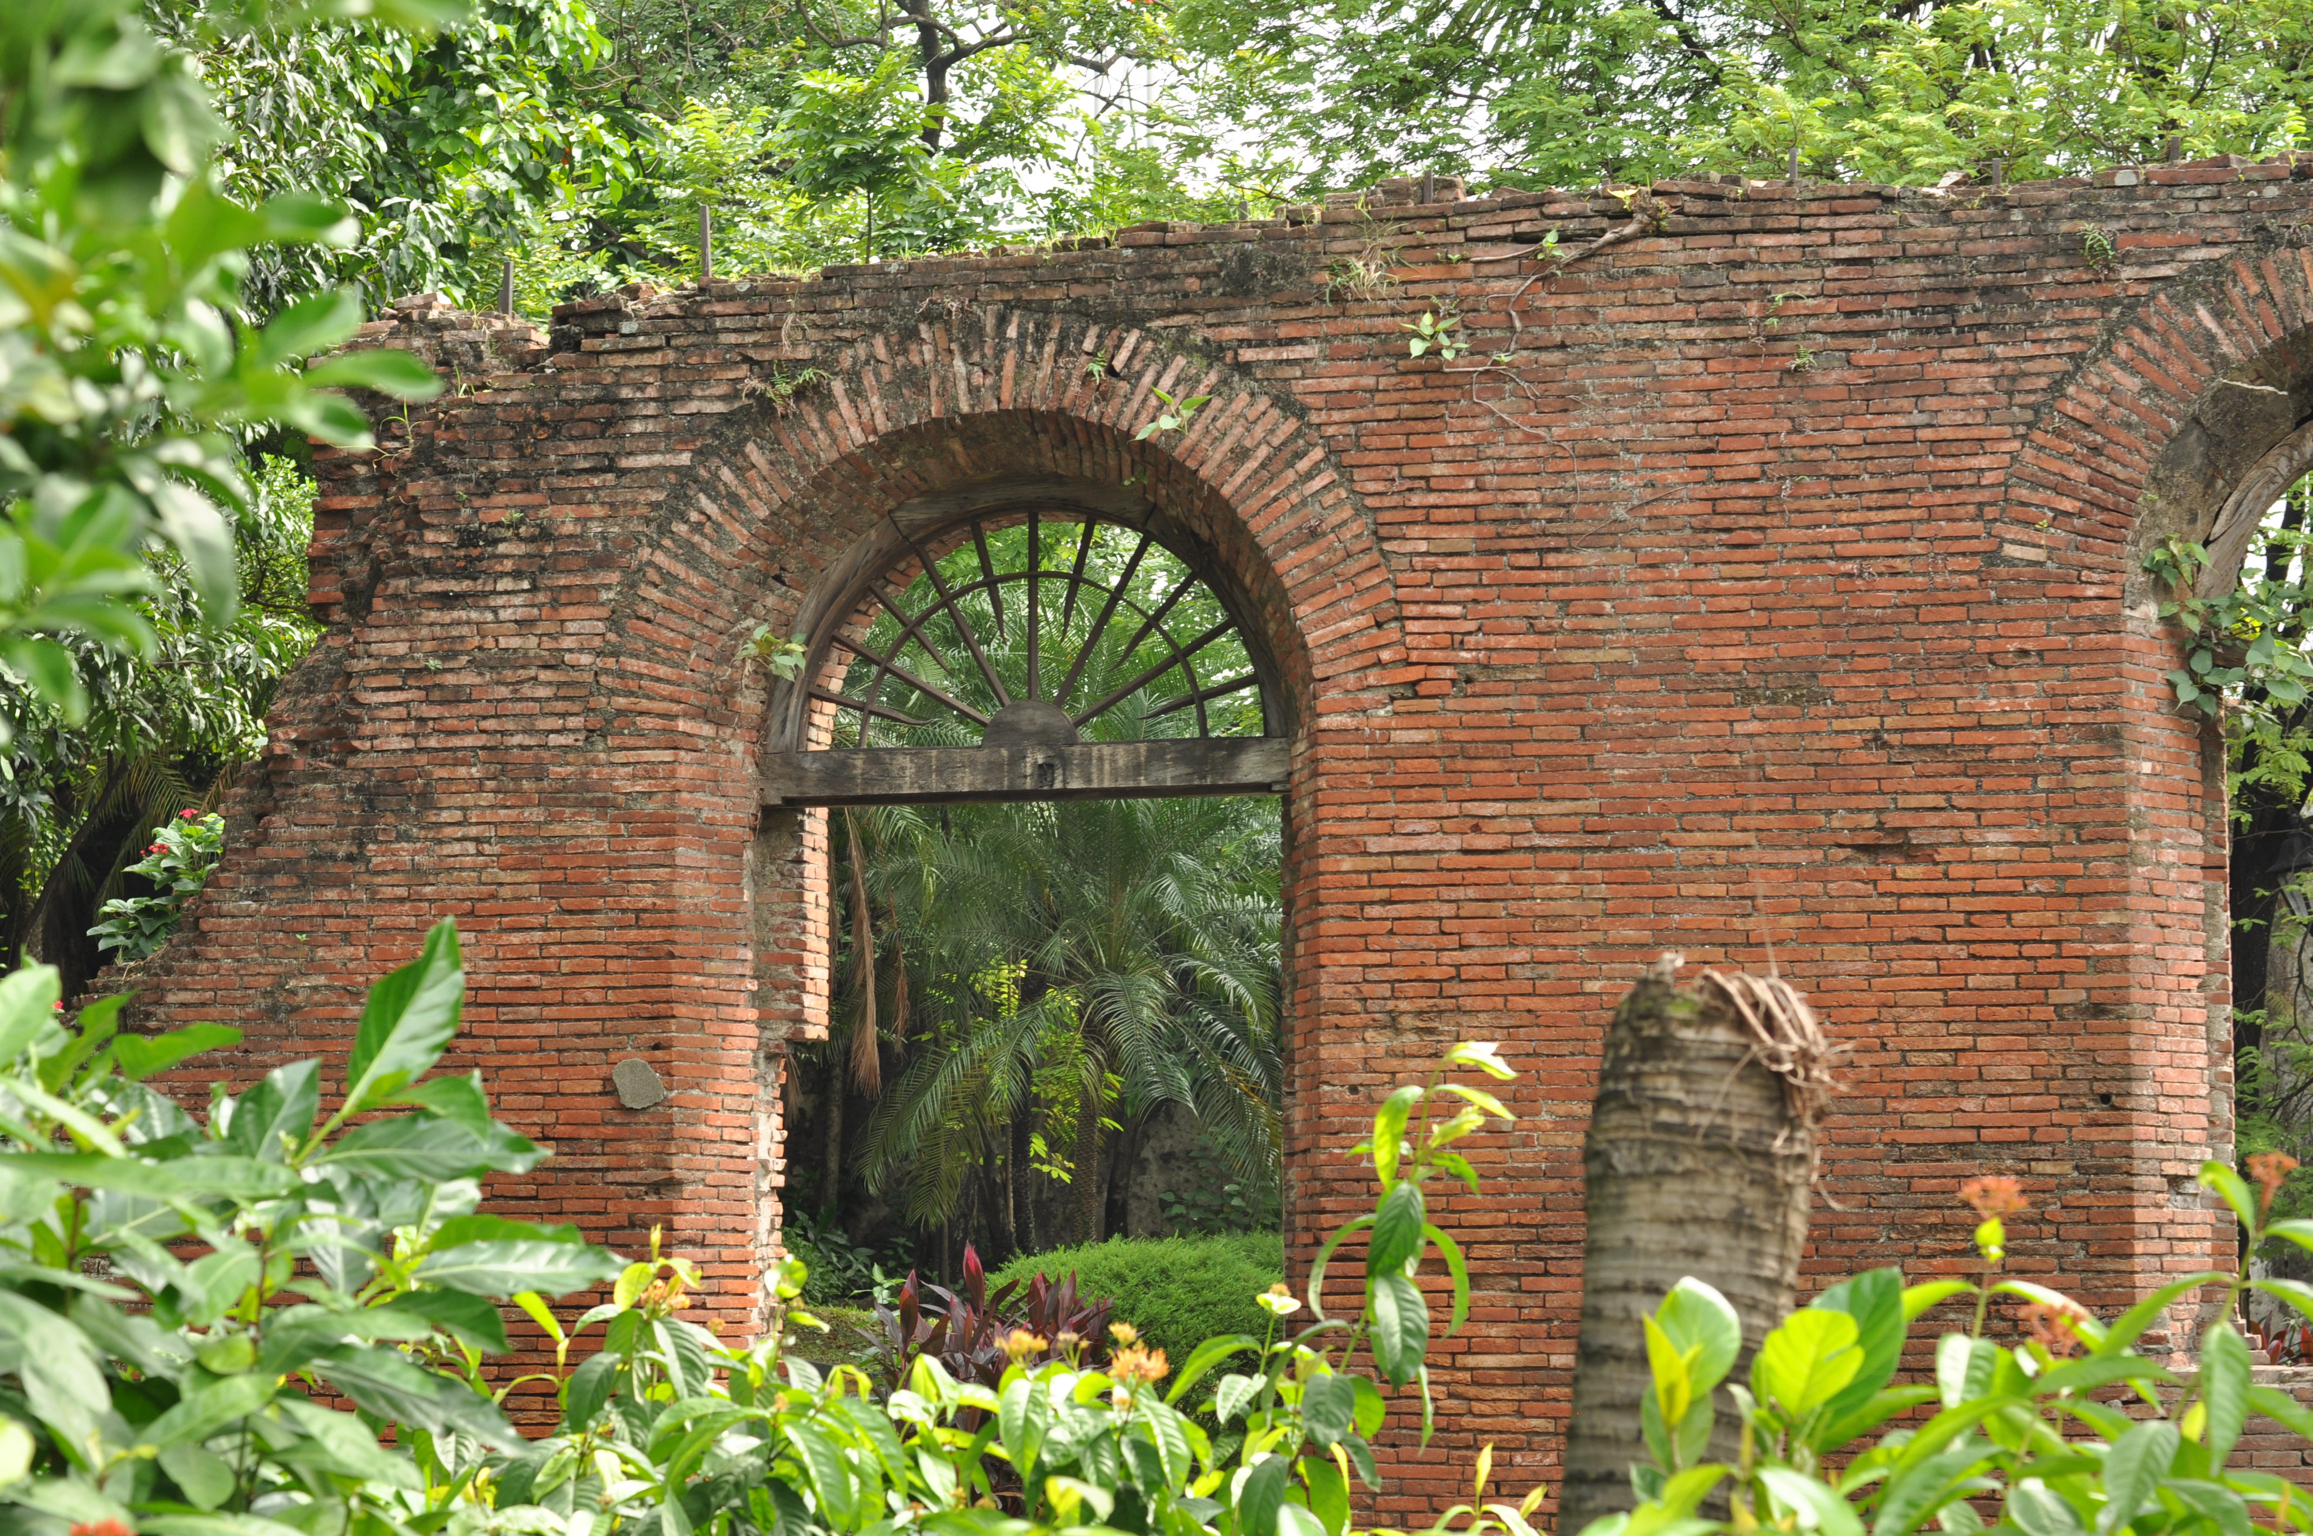 Wall with arches in Fort Santiago Intramuros, Manila, Philippines